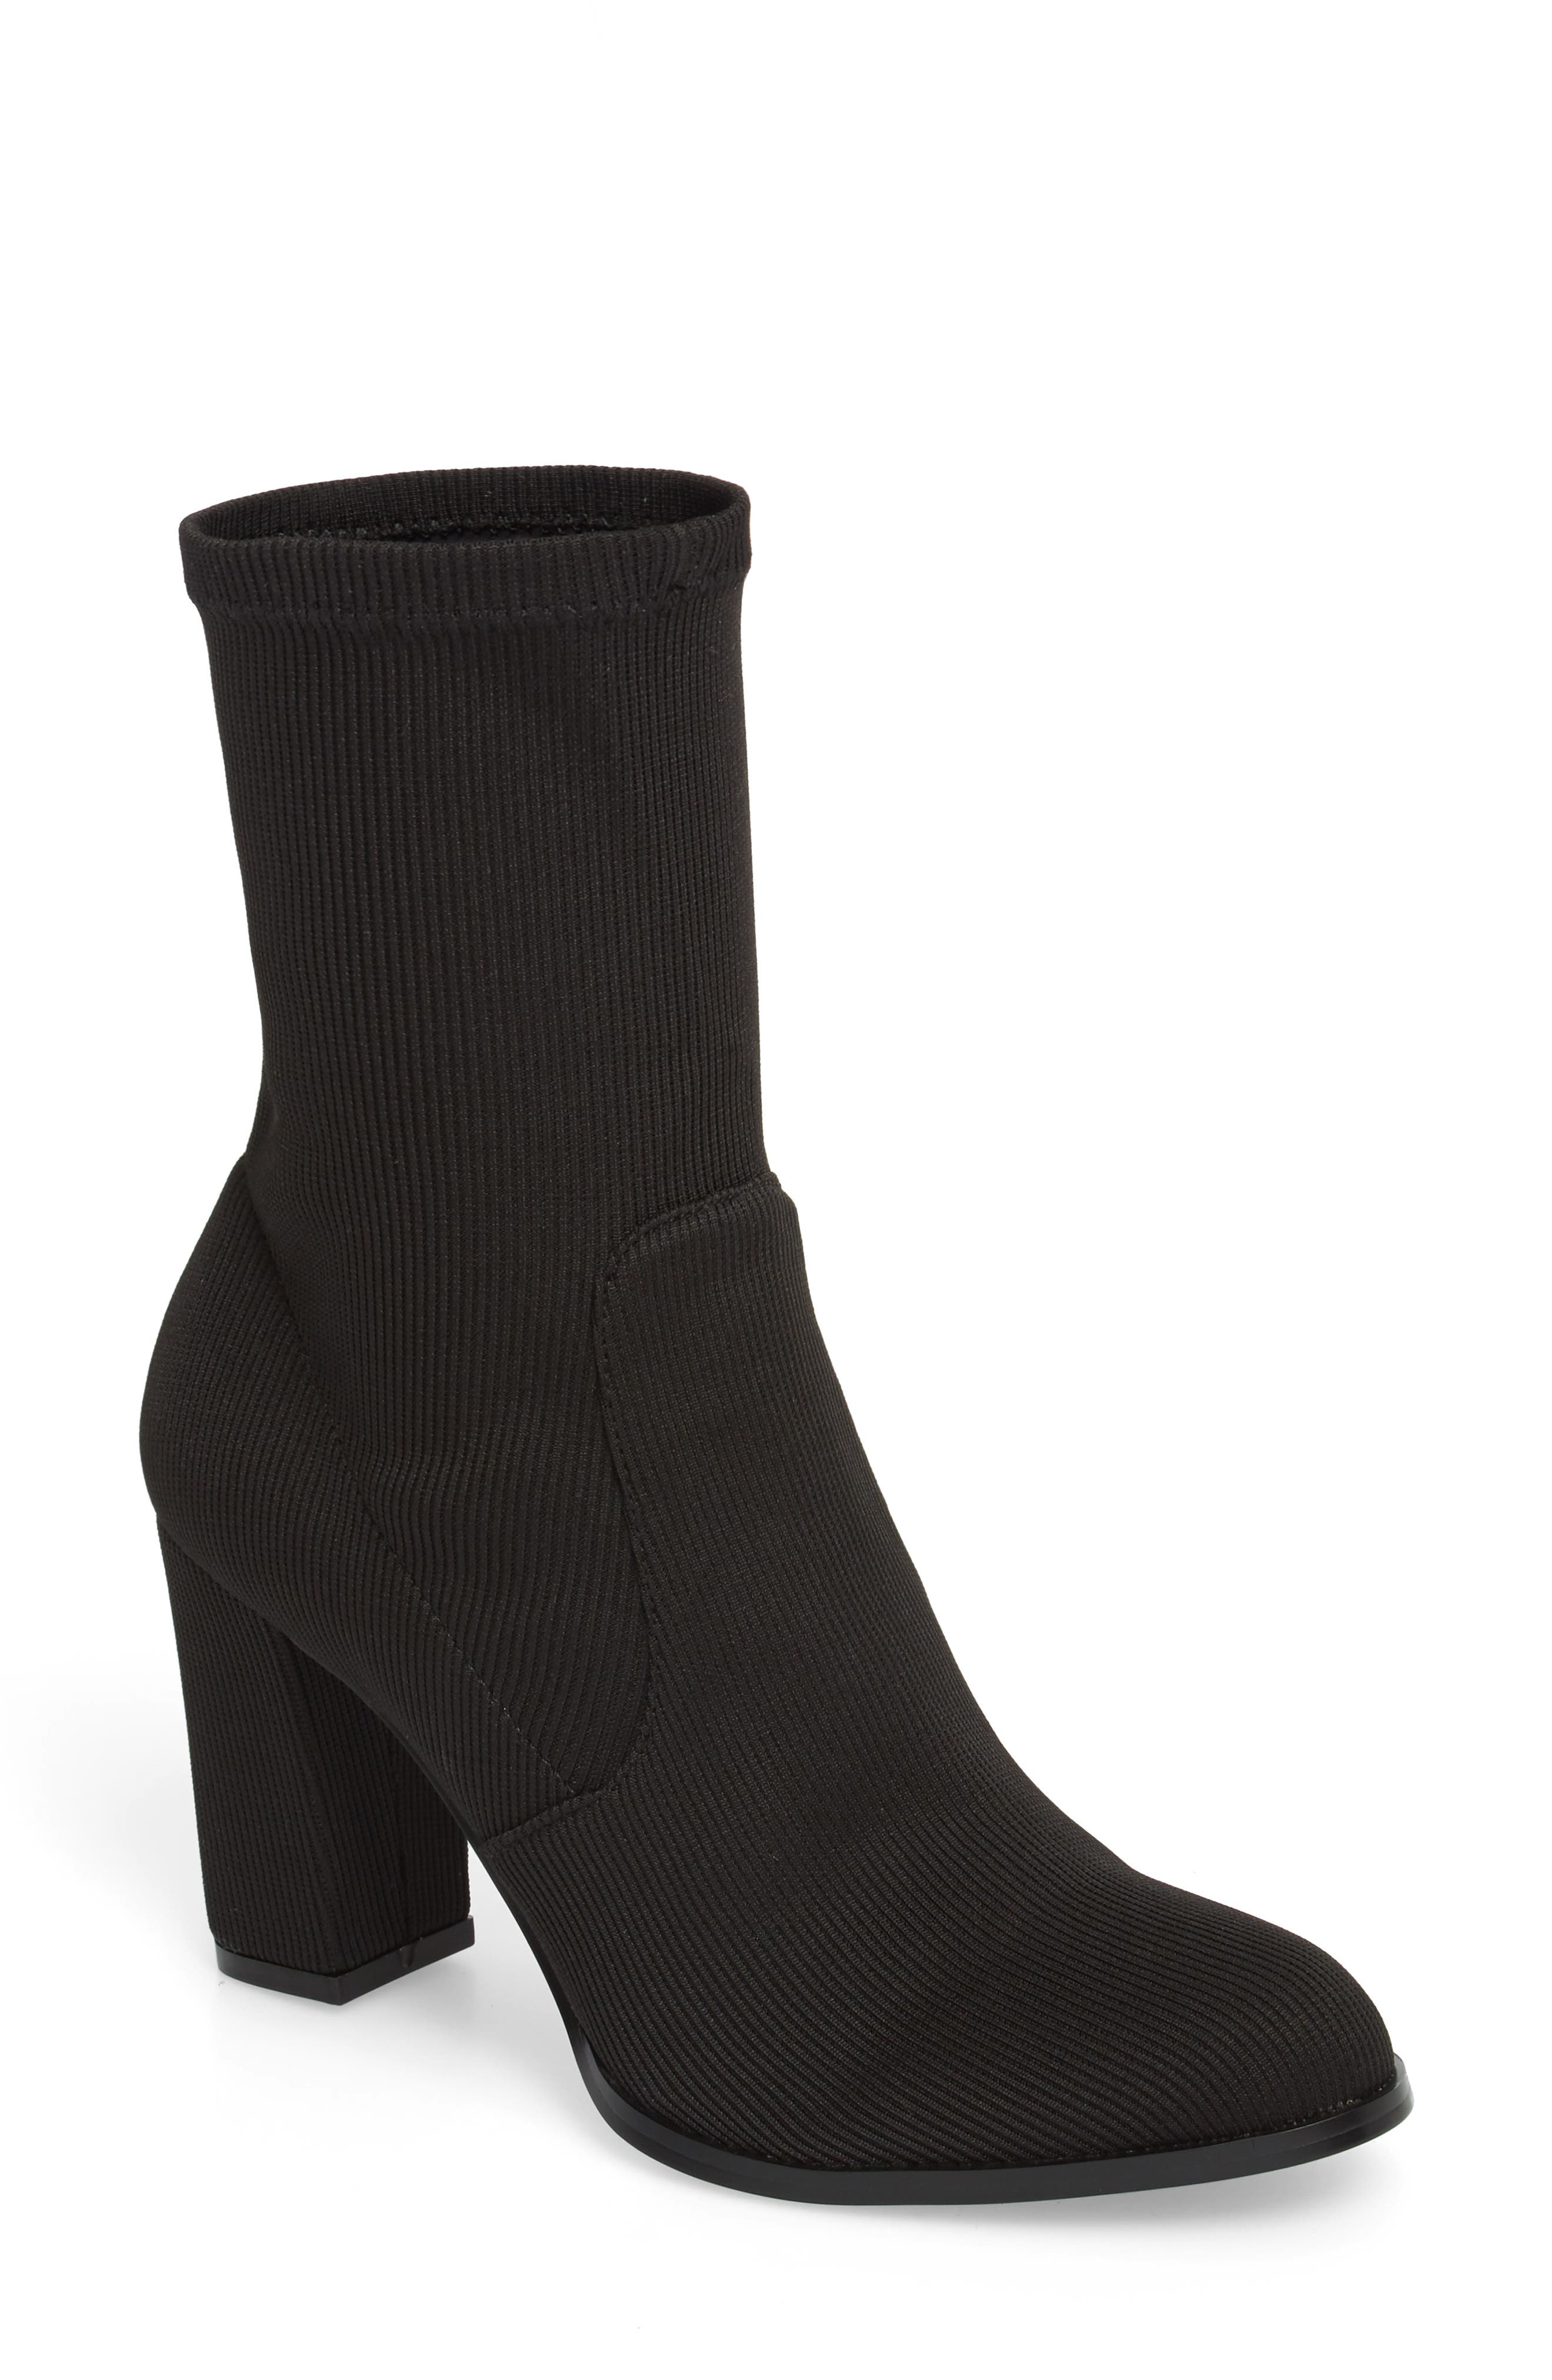 CHINESE LAUNDRY Craze Bootie, Main, color, BLACK FABRIC